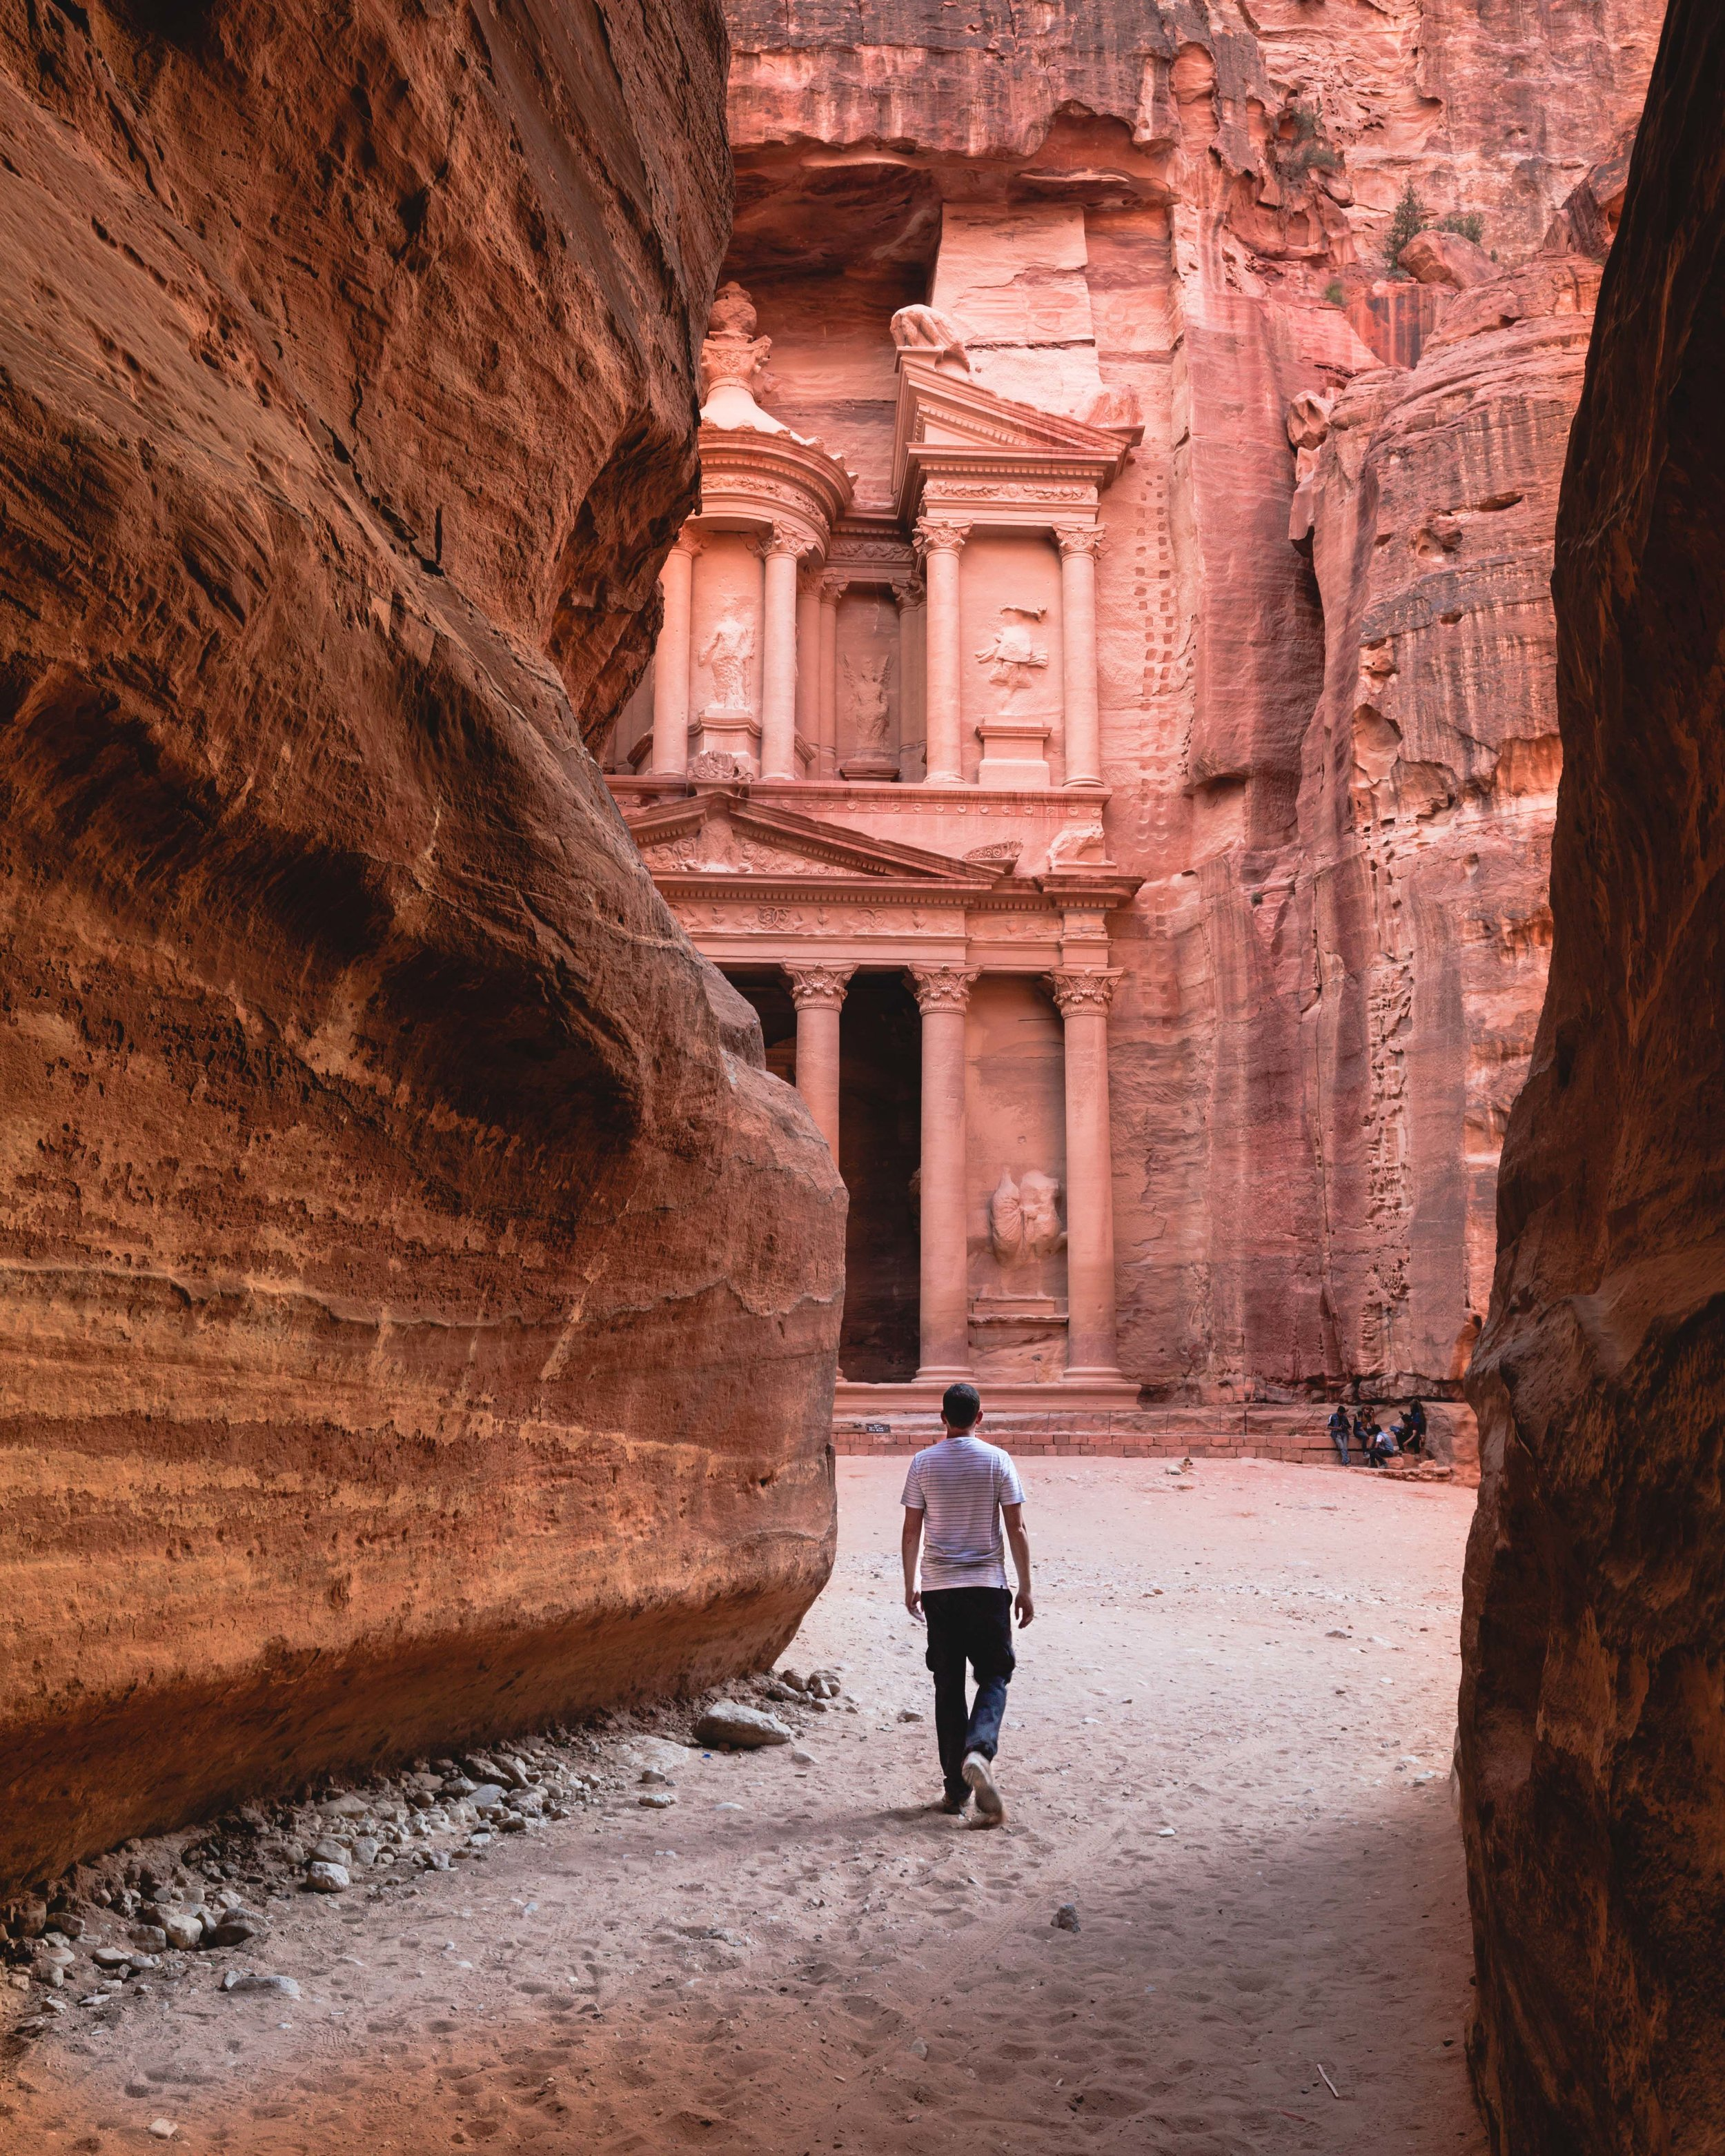 Instagrammable Jordan - the Siq at The Treasury